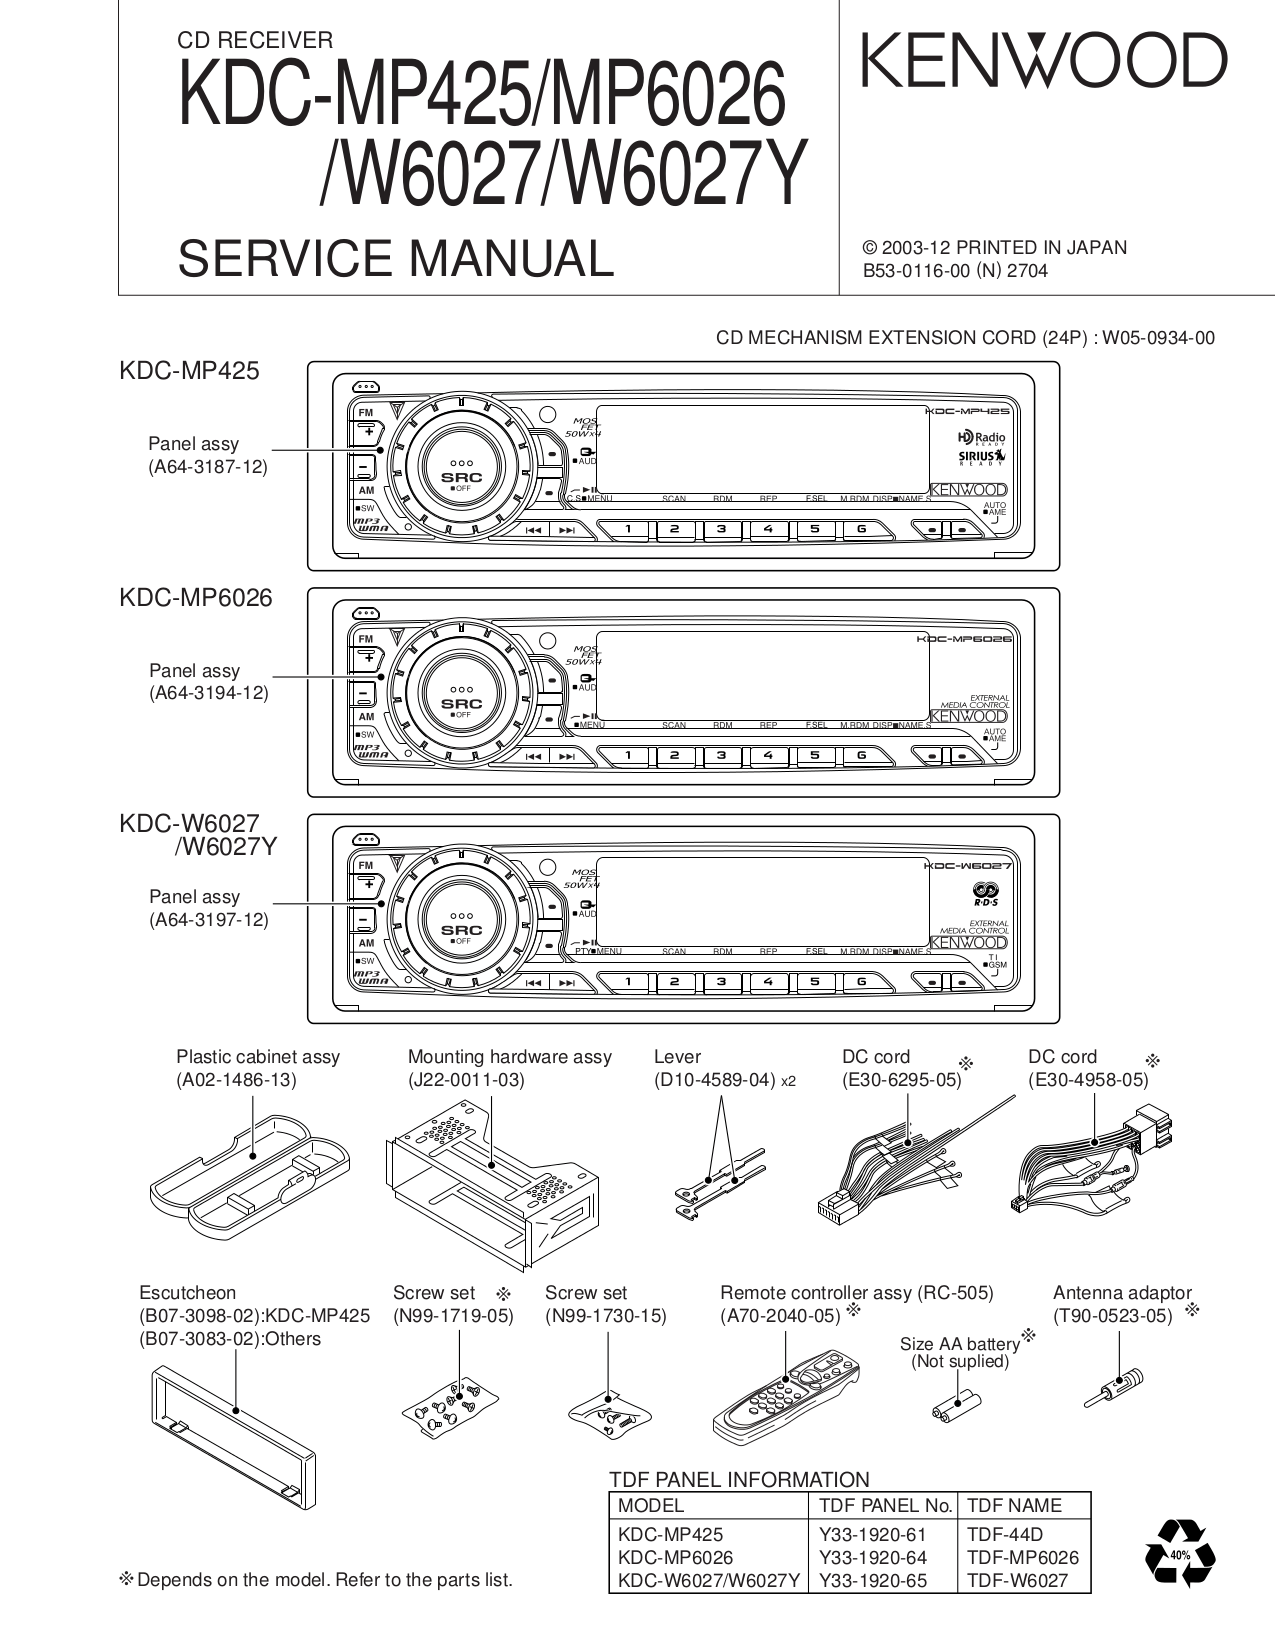 a car stereo wiring diagram for kenwood mp 425